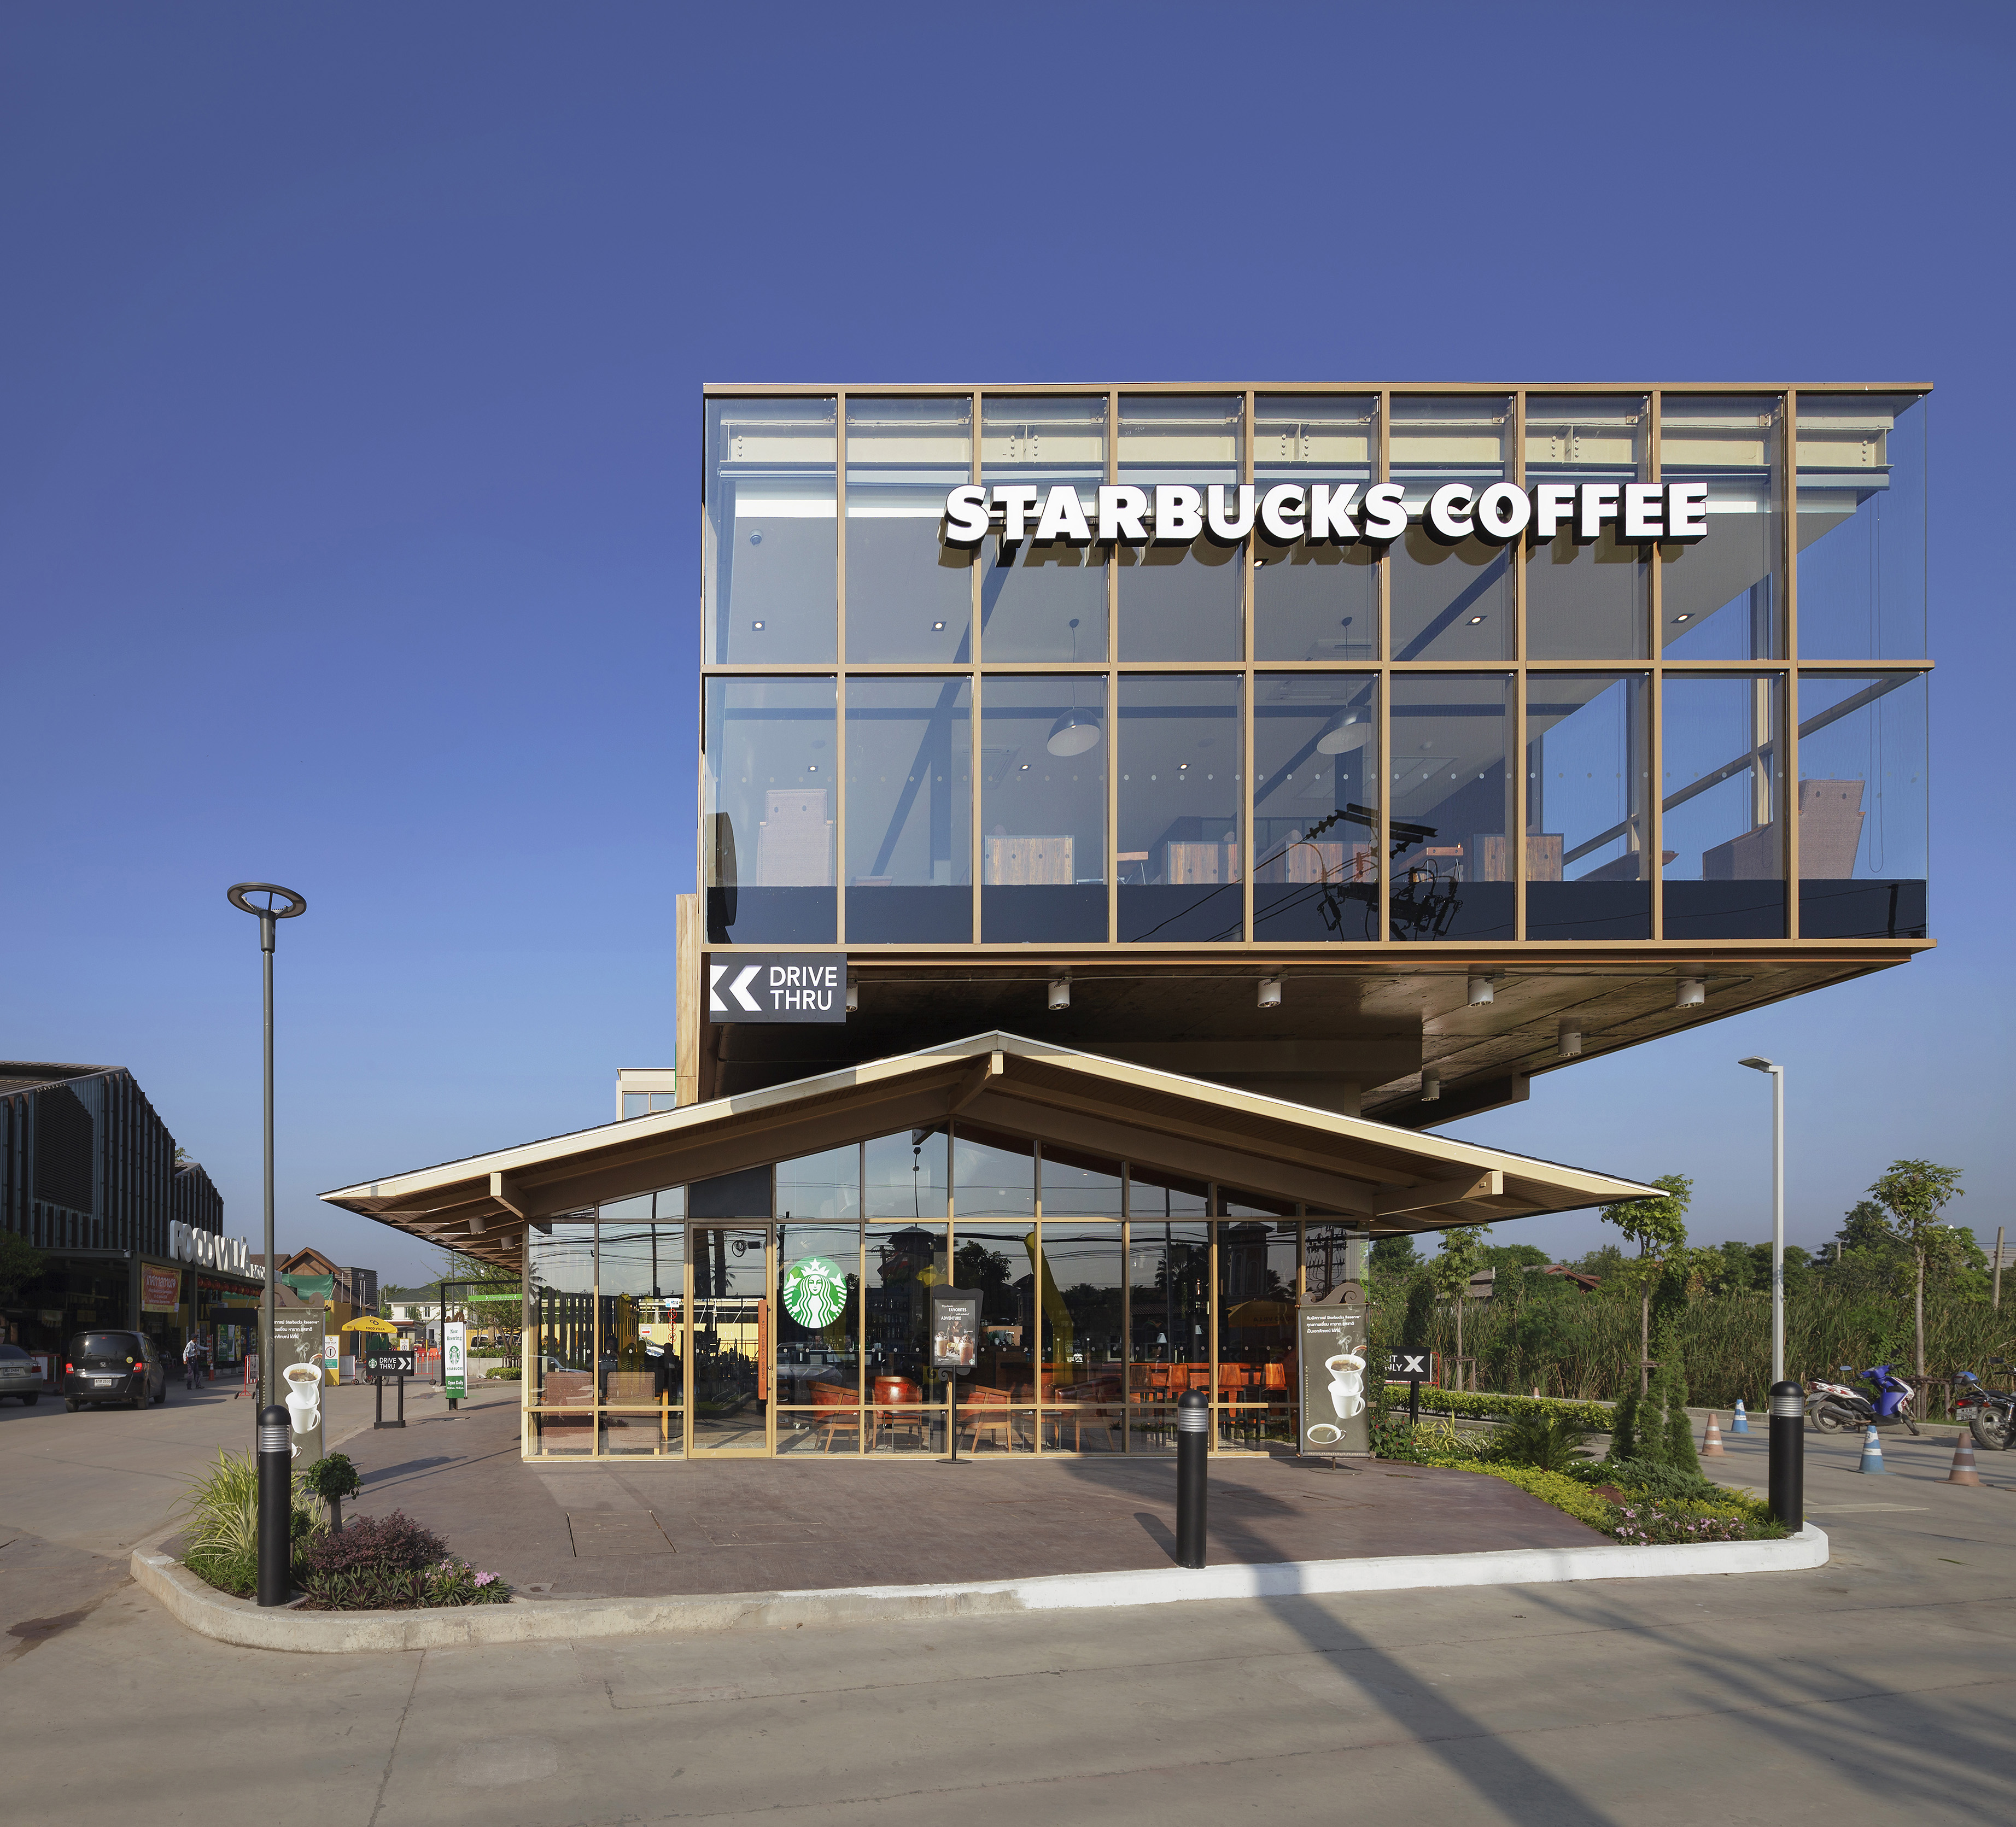 Starbucks Food Villa